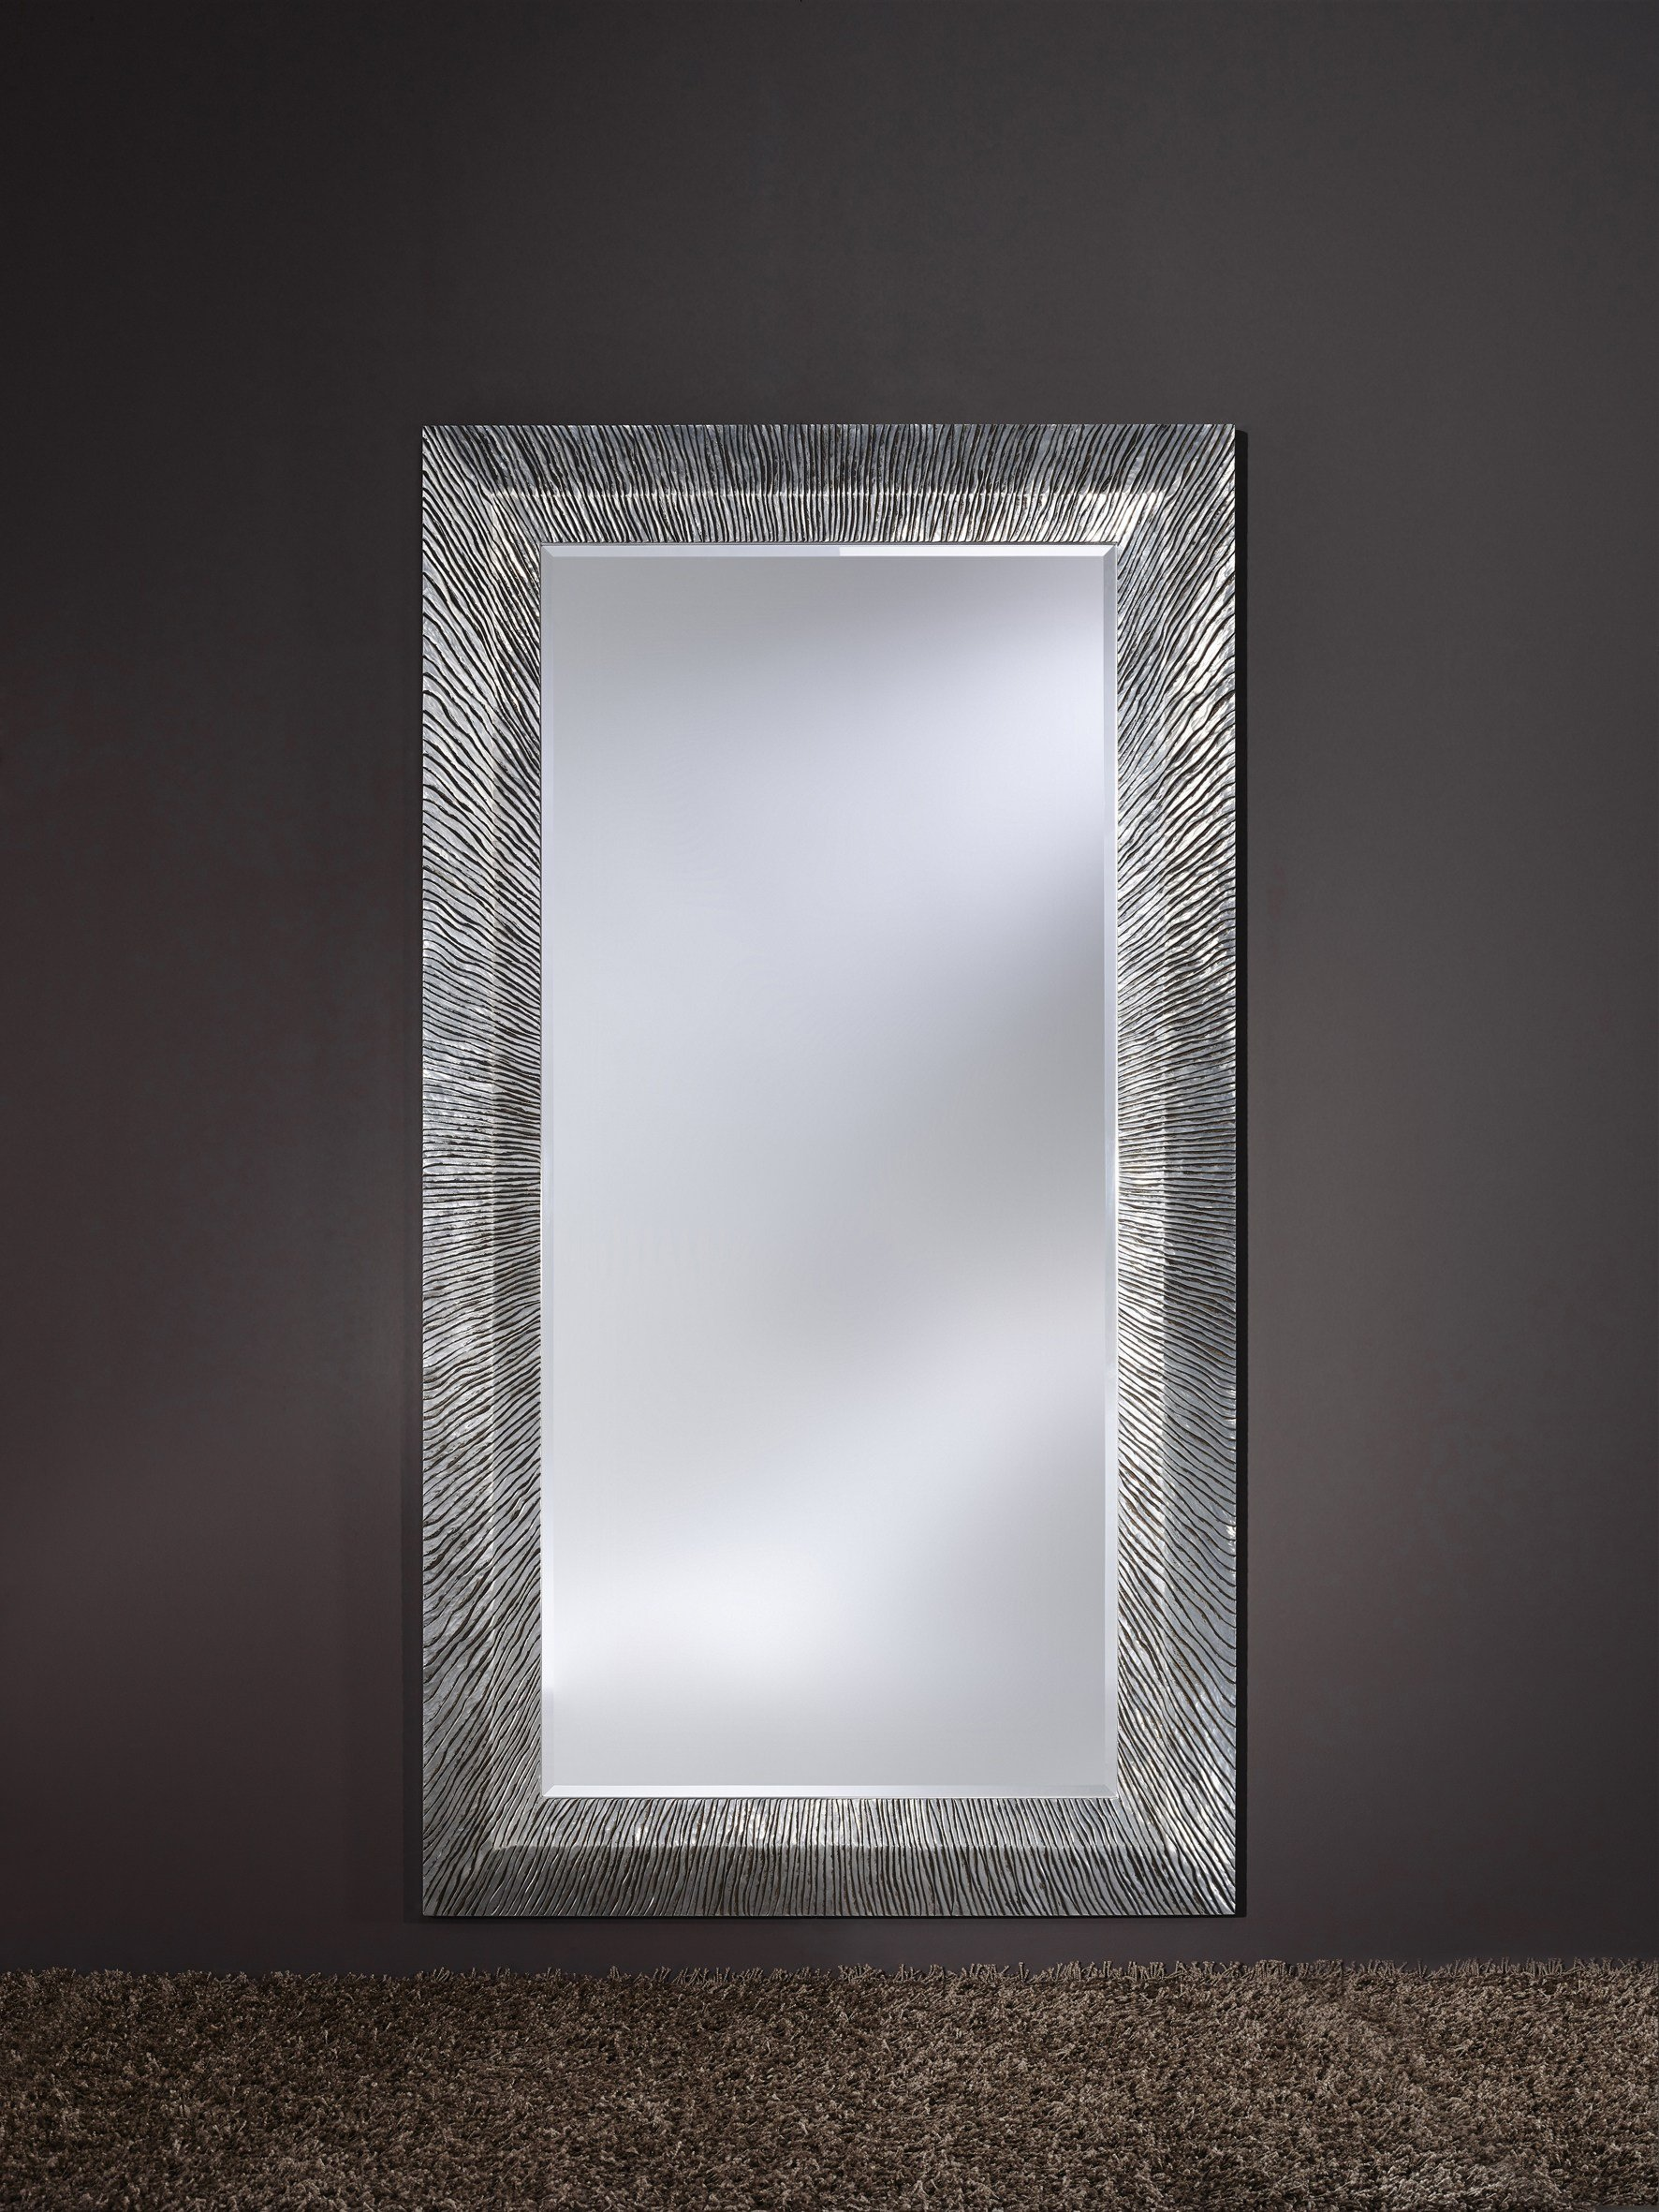 Groove miroir art d co by deknudt mirrors for Deco 3 miroirs